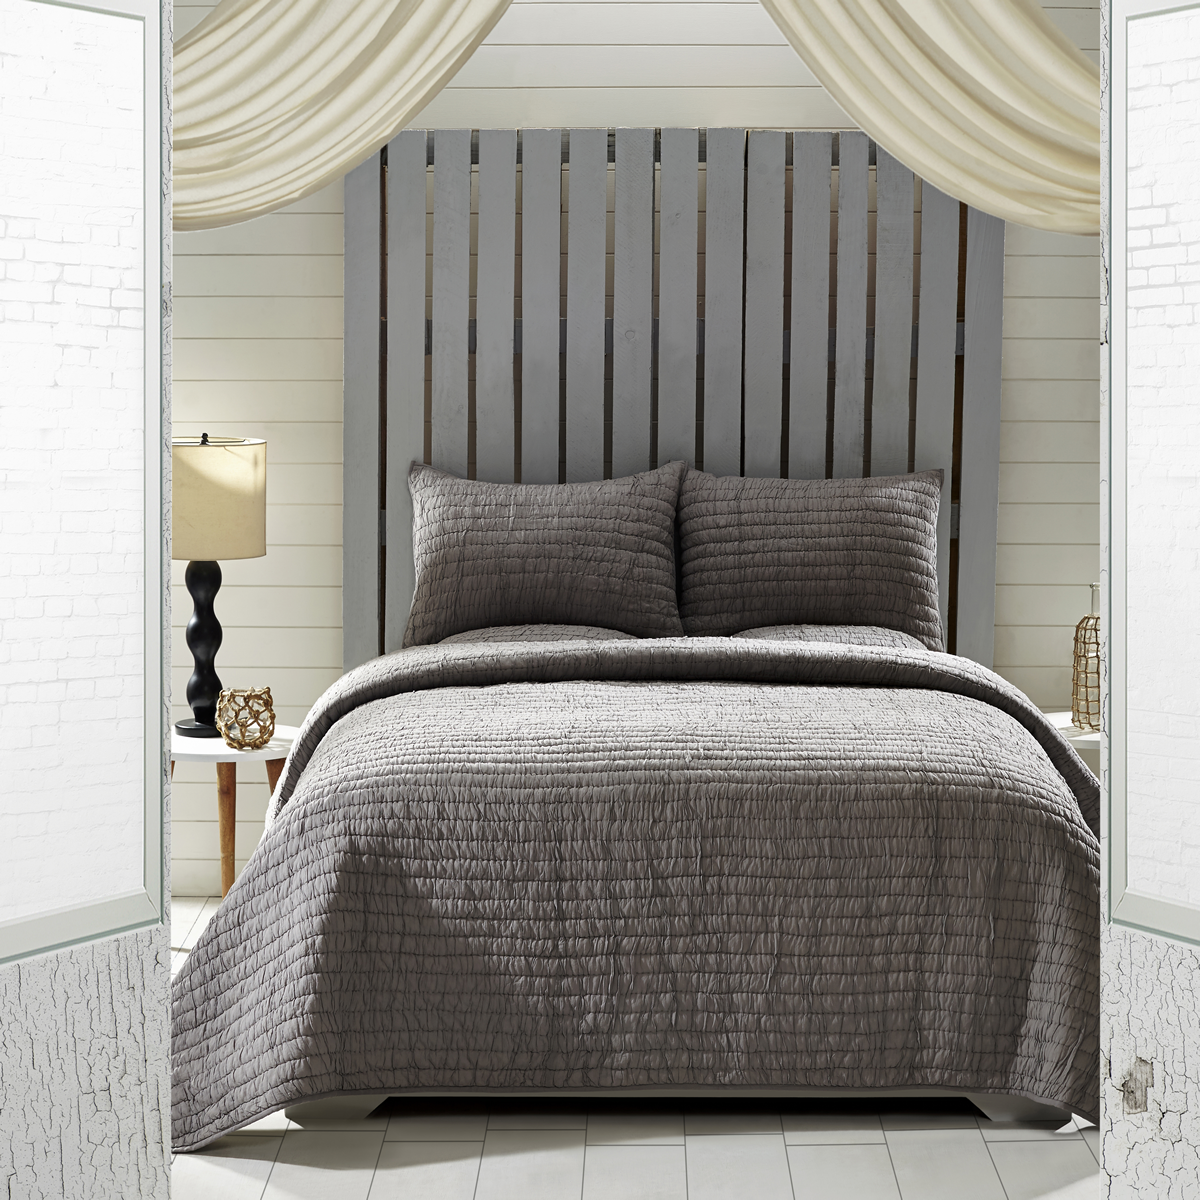 """New for 2015. This Bella Taylor Home set comes with a quilt and 2 shams. It comes with 2, 21x37"""" shams. It is 100% cotton voile with 2"""" ruching. King $179.95, Queen $159.95 and Twin $109.95."""